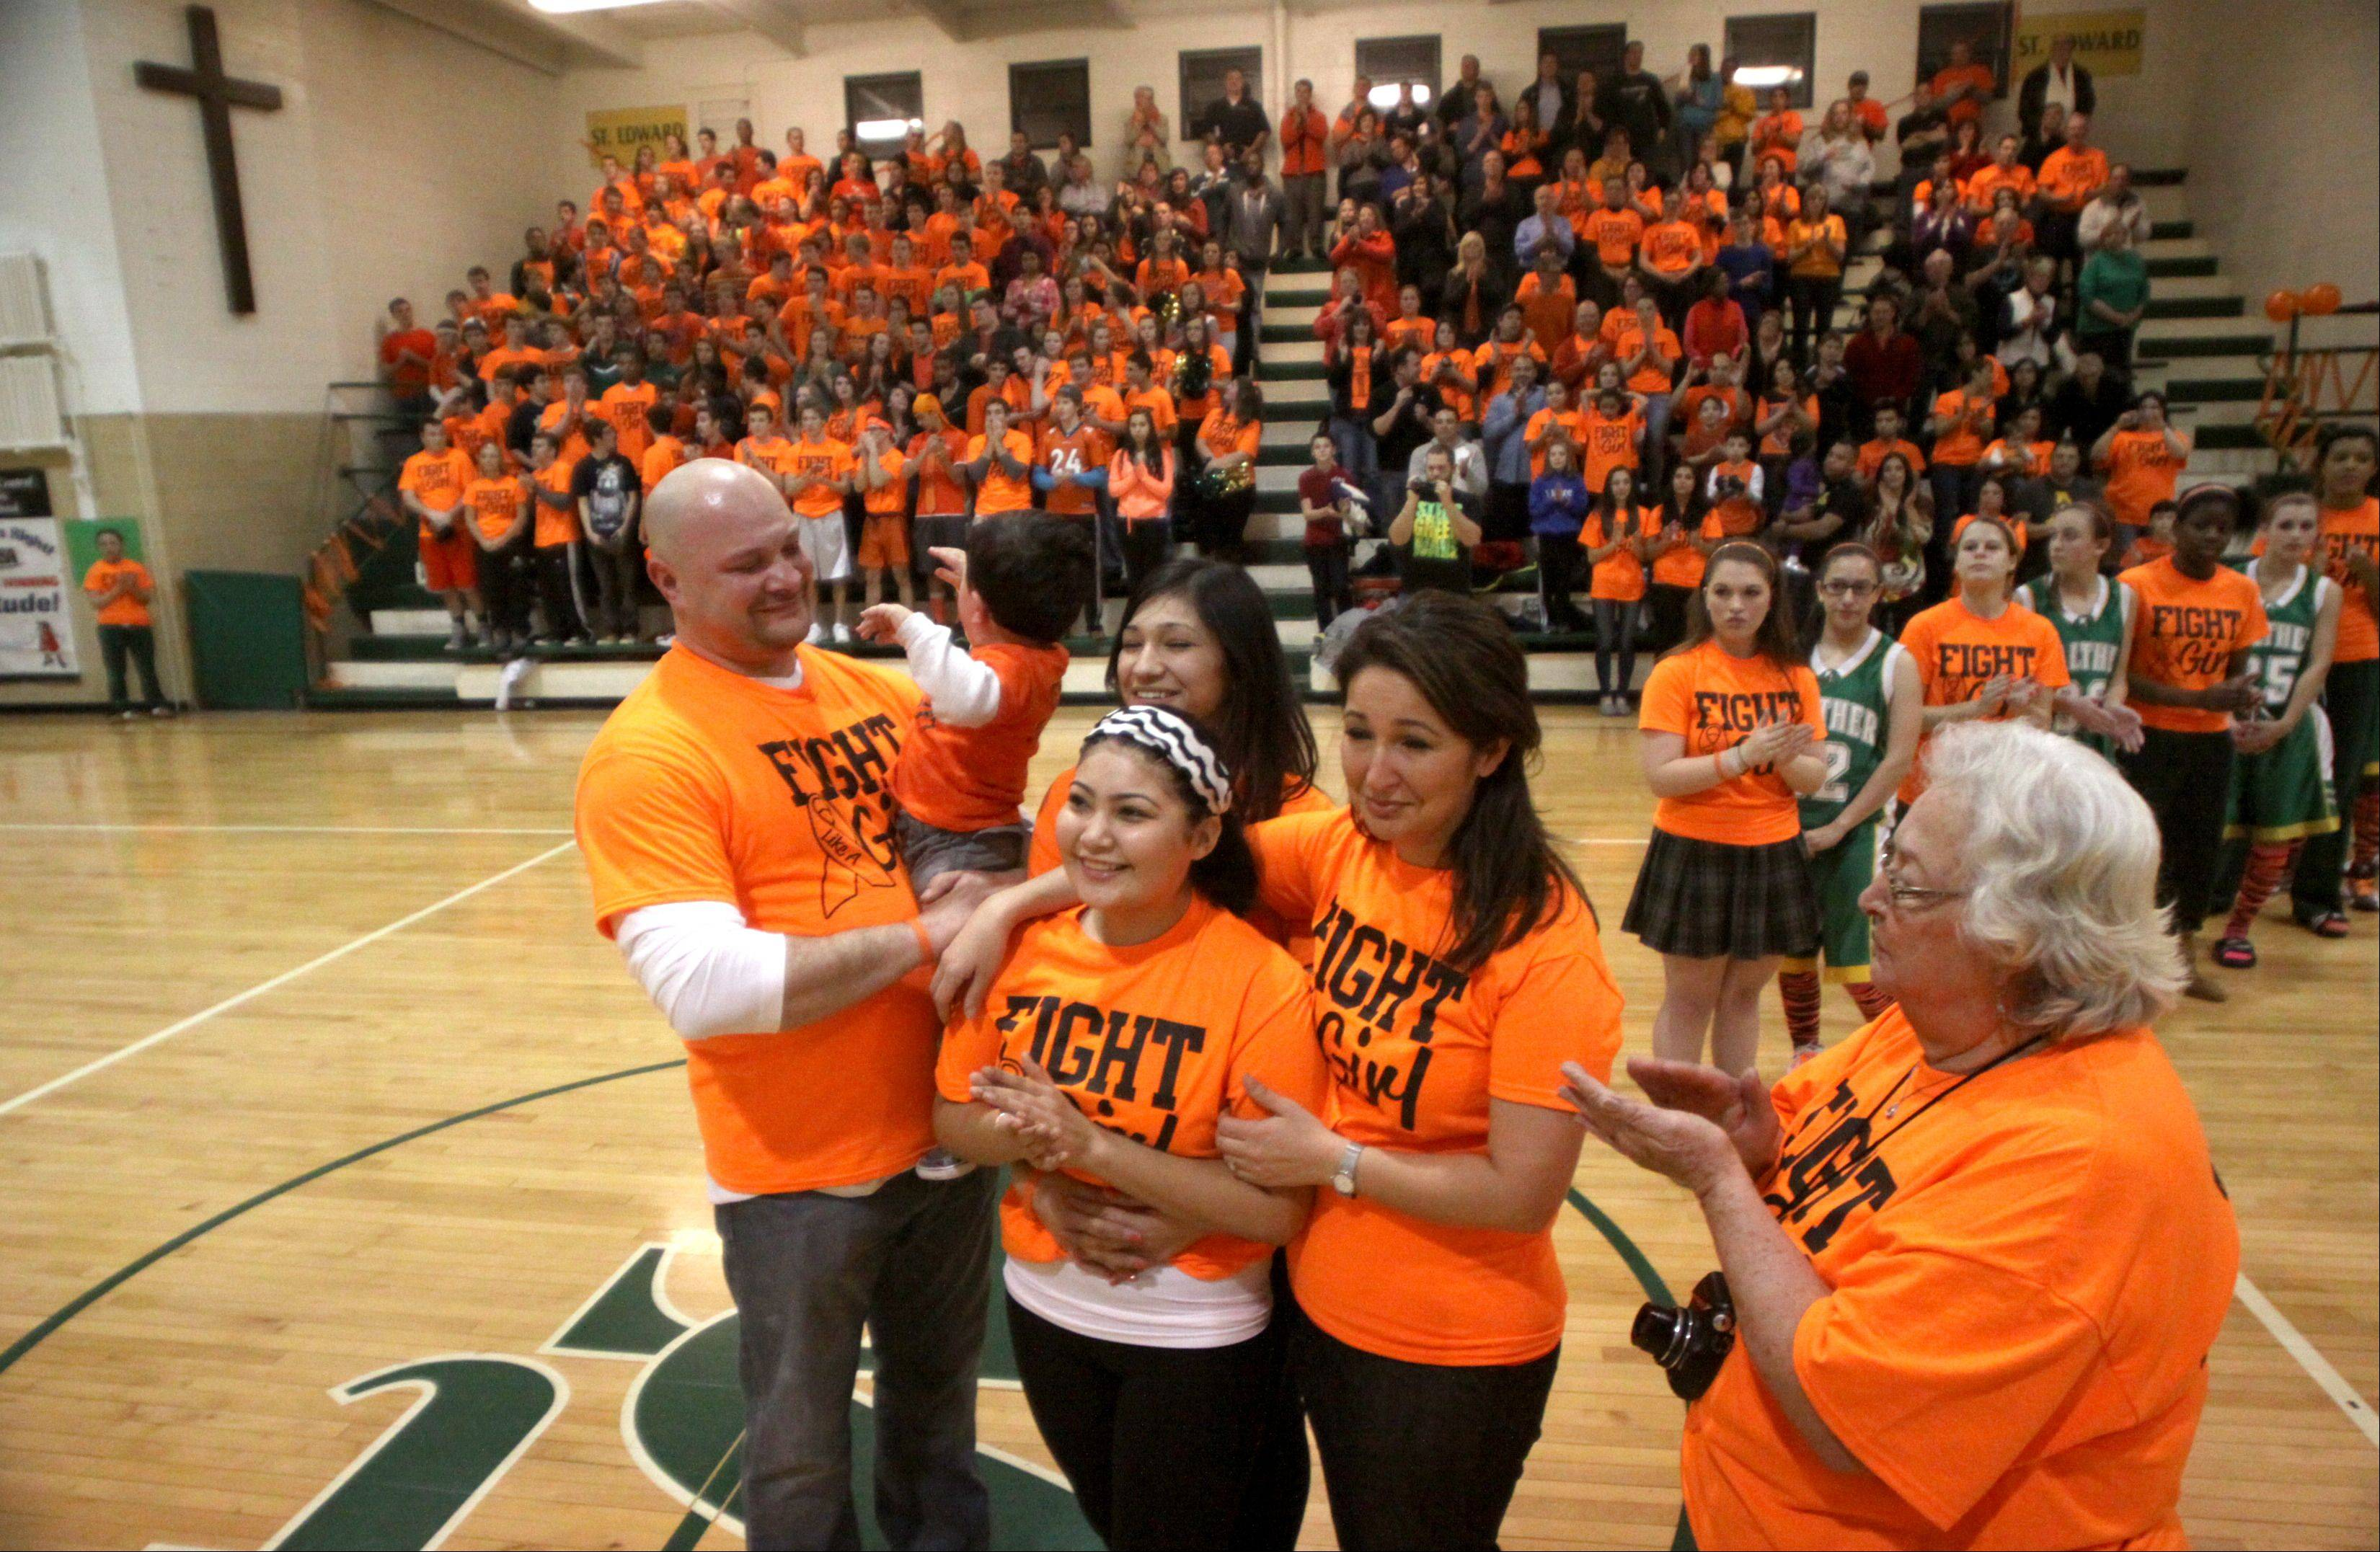 St. Edward sophomore basketball player Jordan Paz was honored before a varsity contest against Walther Lutheran at Elgin on Thursday night. Paz is undergoing treatment for Leukemia, and school personnel arranged an